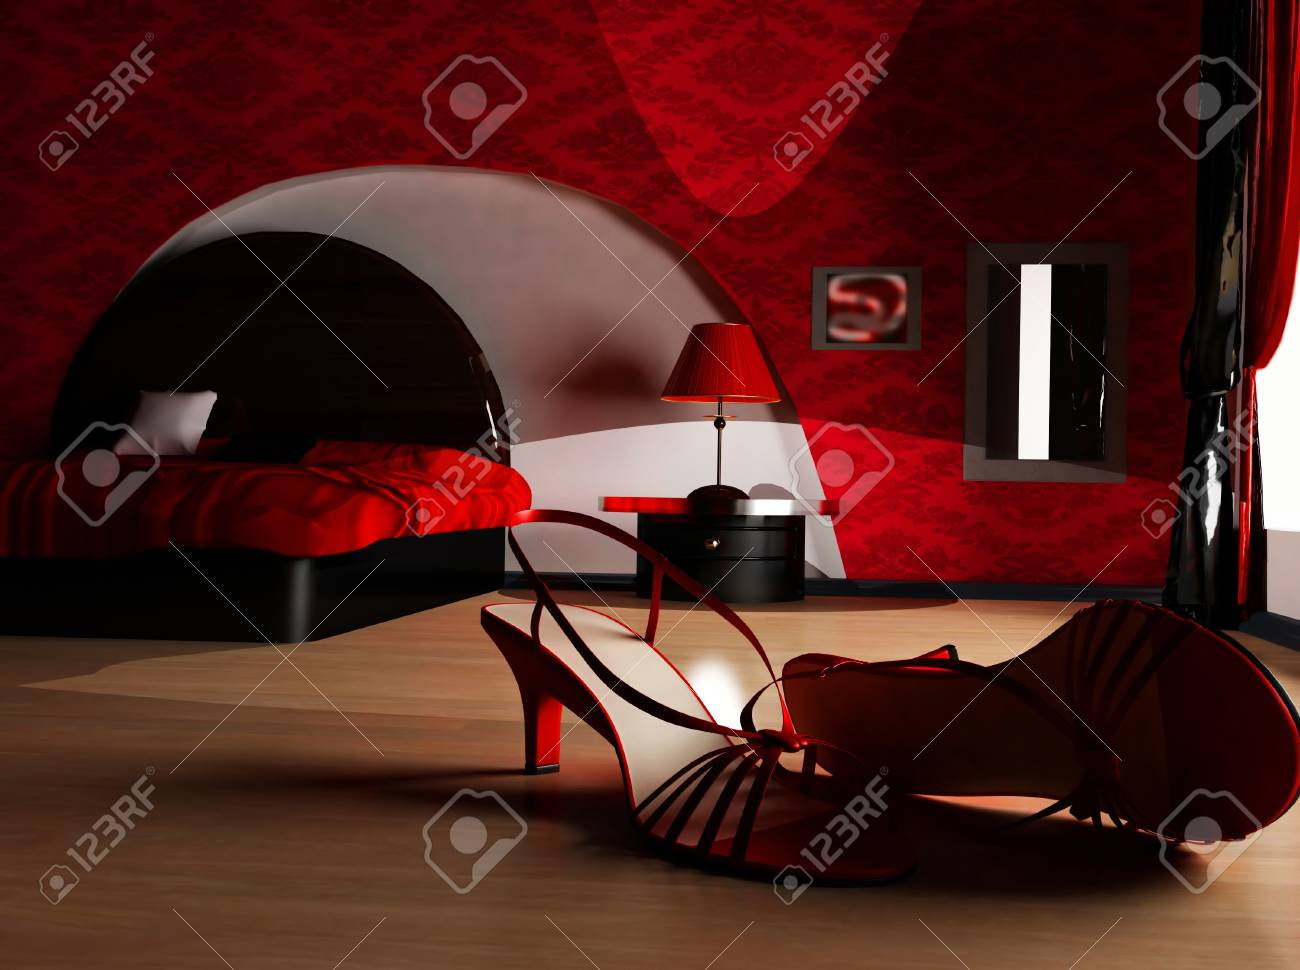 this is an interior of a bedroom with the shoes on the floor Stock Photo - 12879633